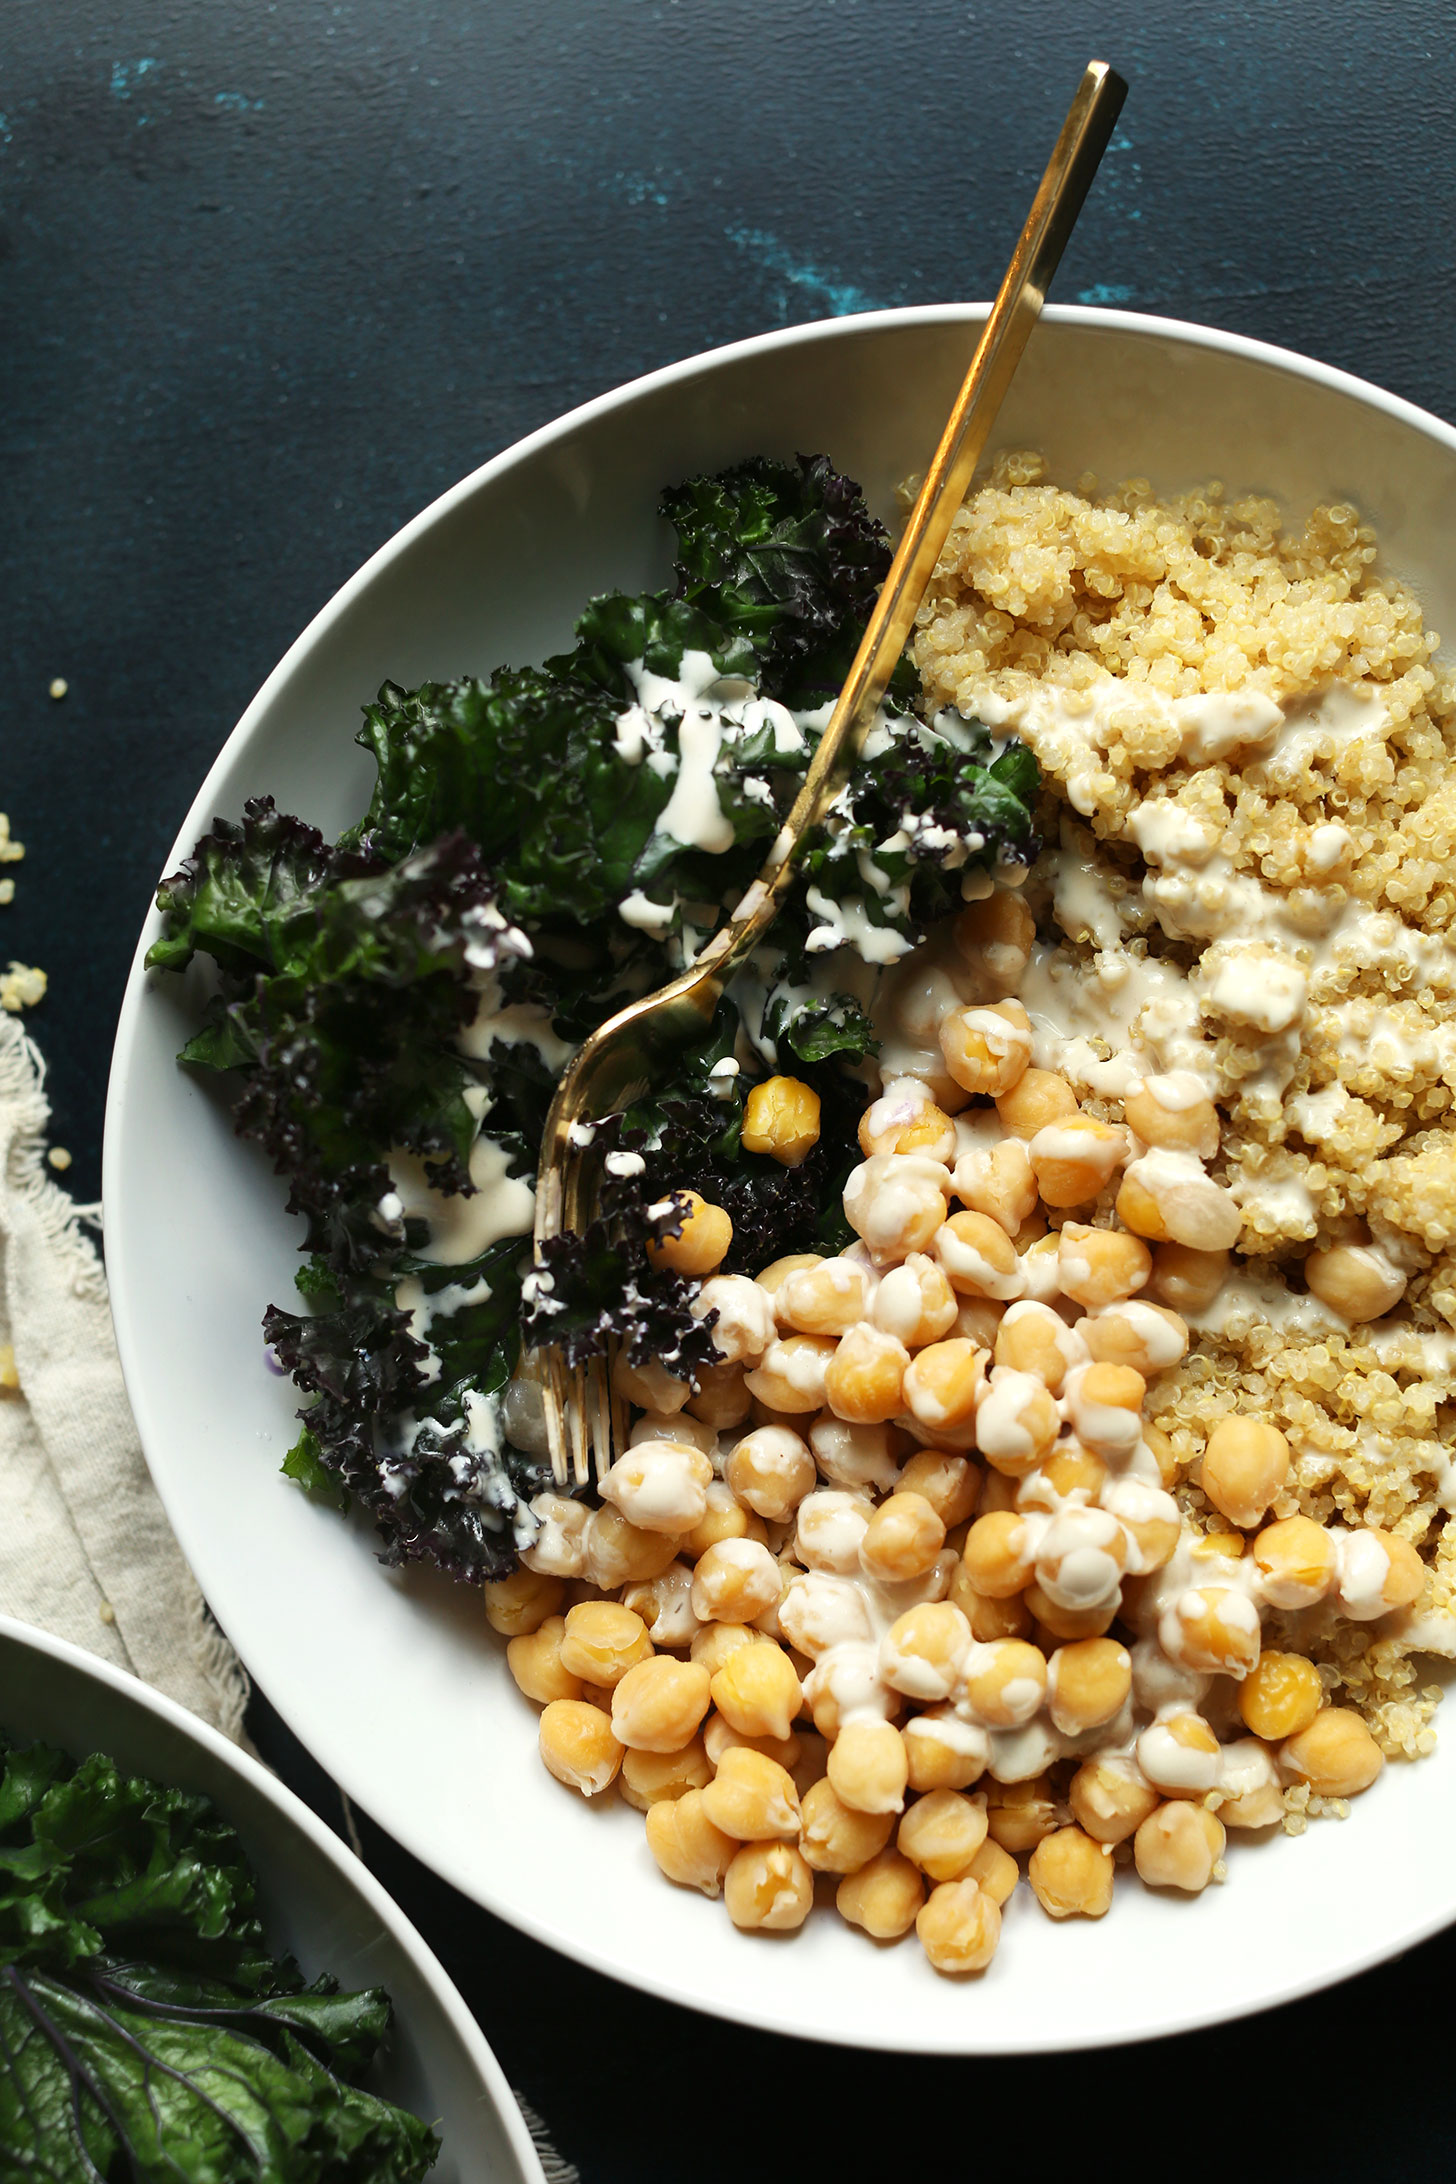 Our Quinoa Chickpea Buddha Bowl recipe ready to be devoured for a quick plant-based dinner